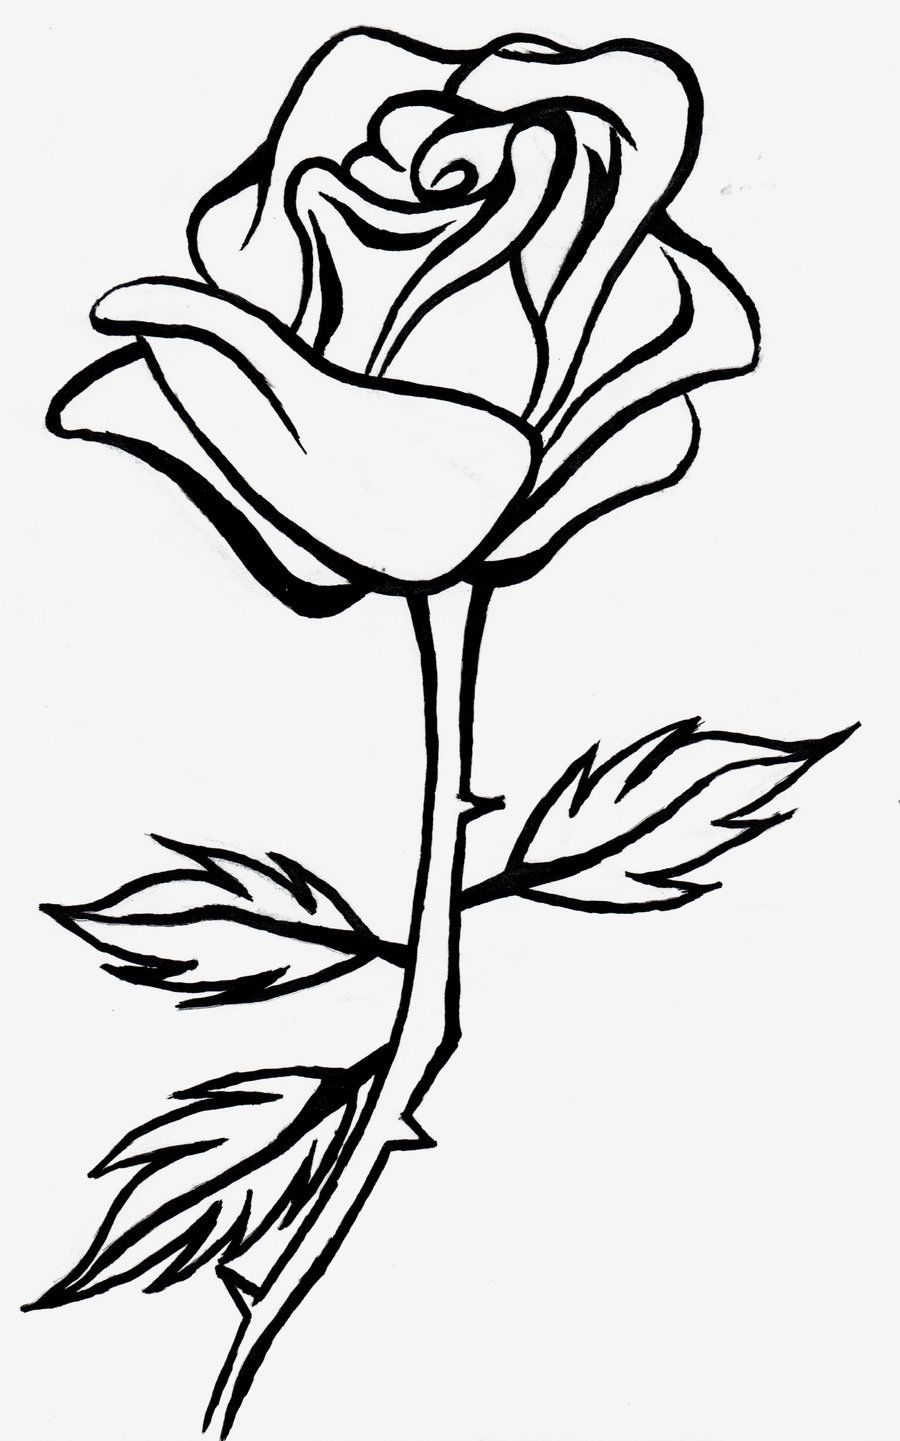 rose art coloring pages - photo#9